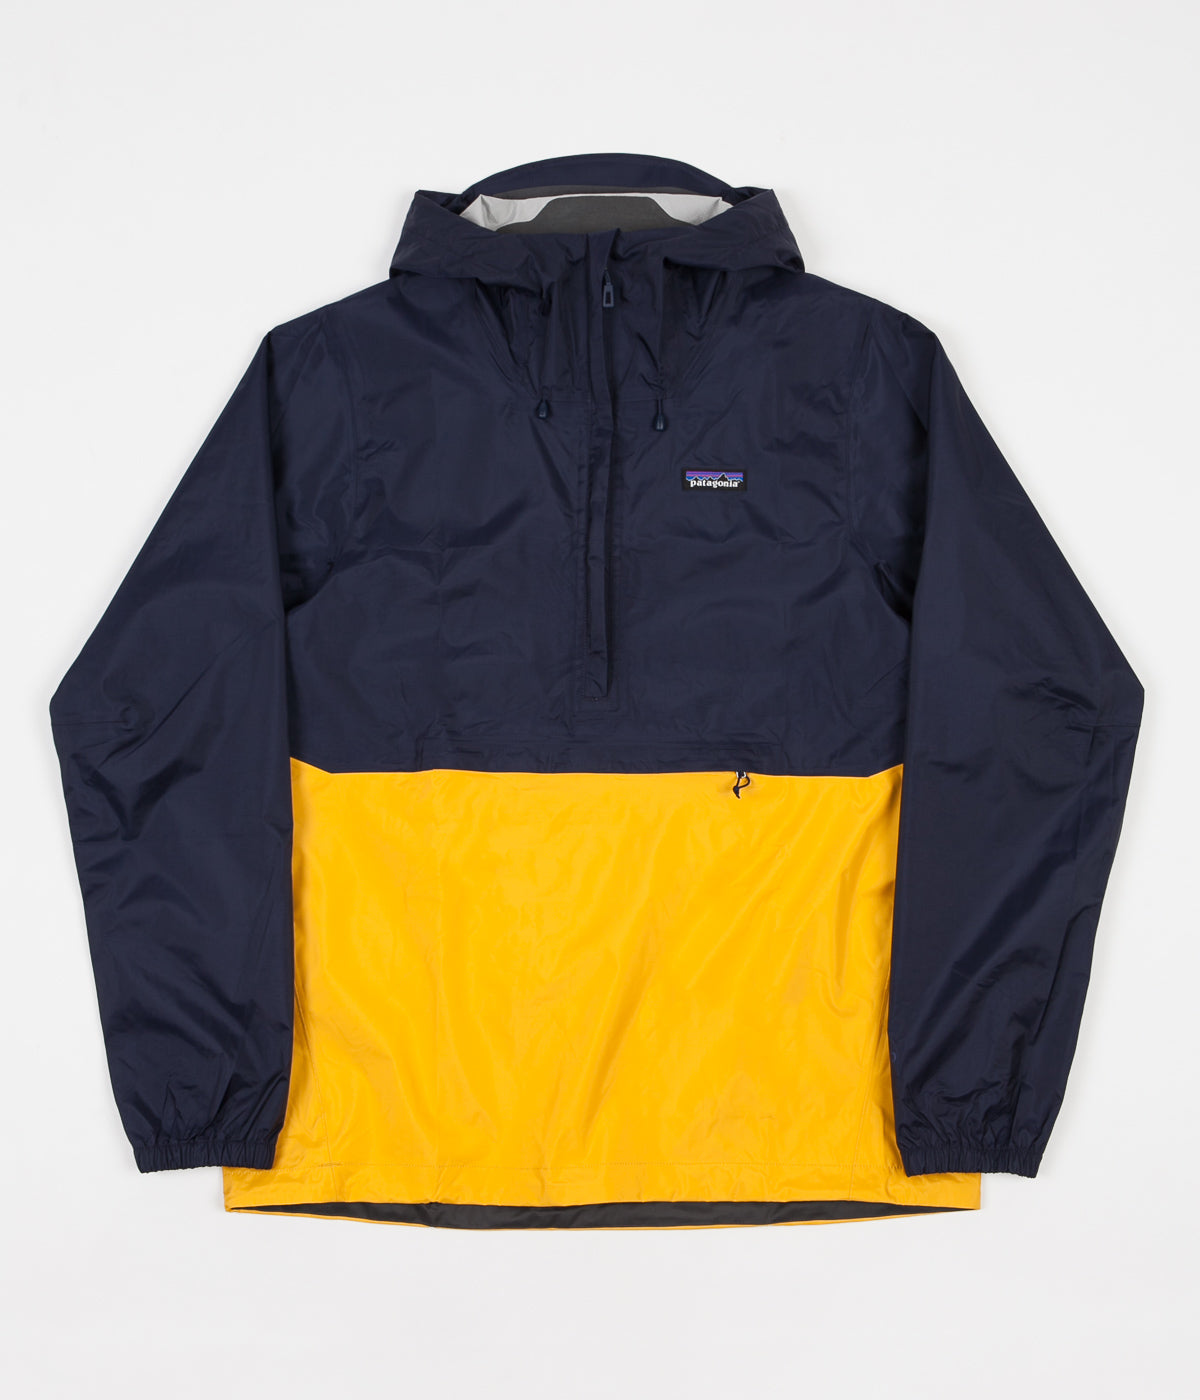 Patagonia TORRENTSHELL - Impermeable - navy blue/rugby yellow FhPX4E2xrU